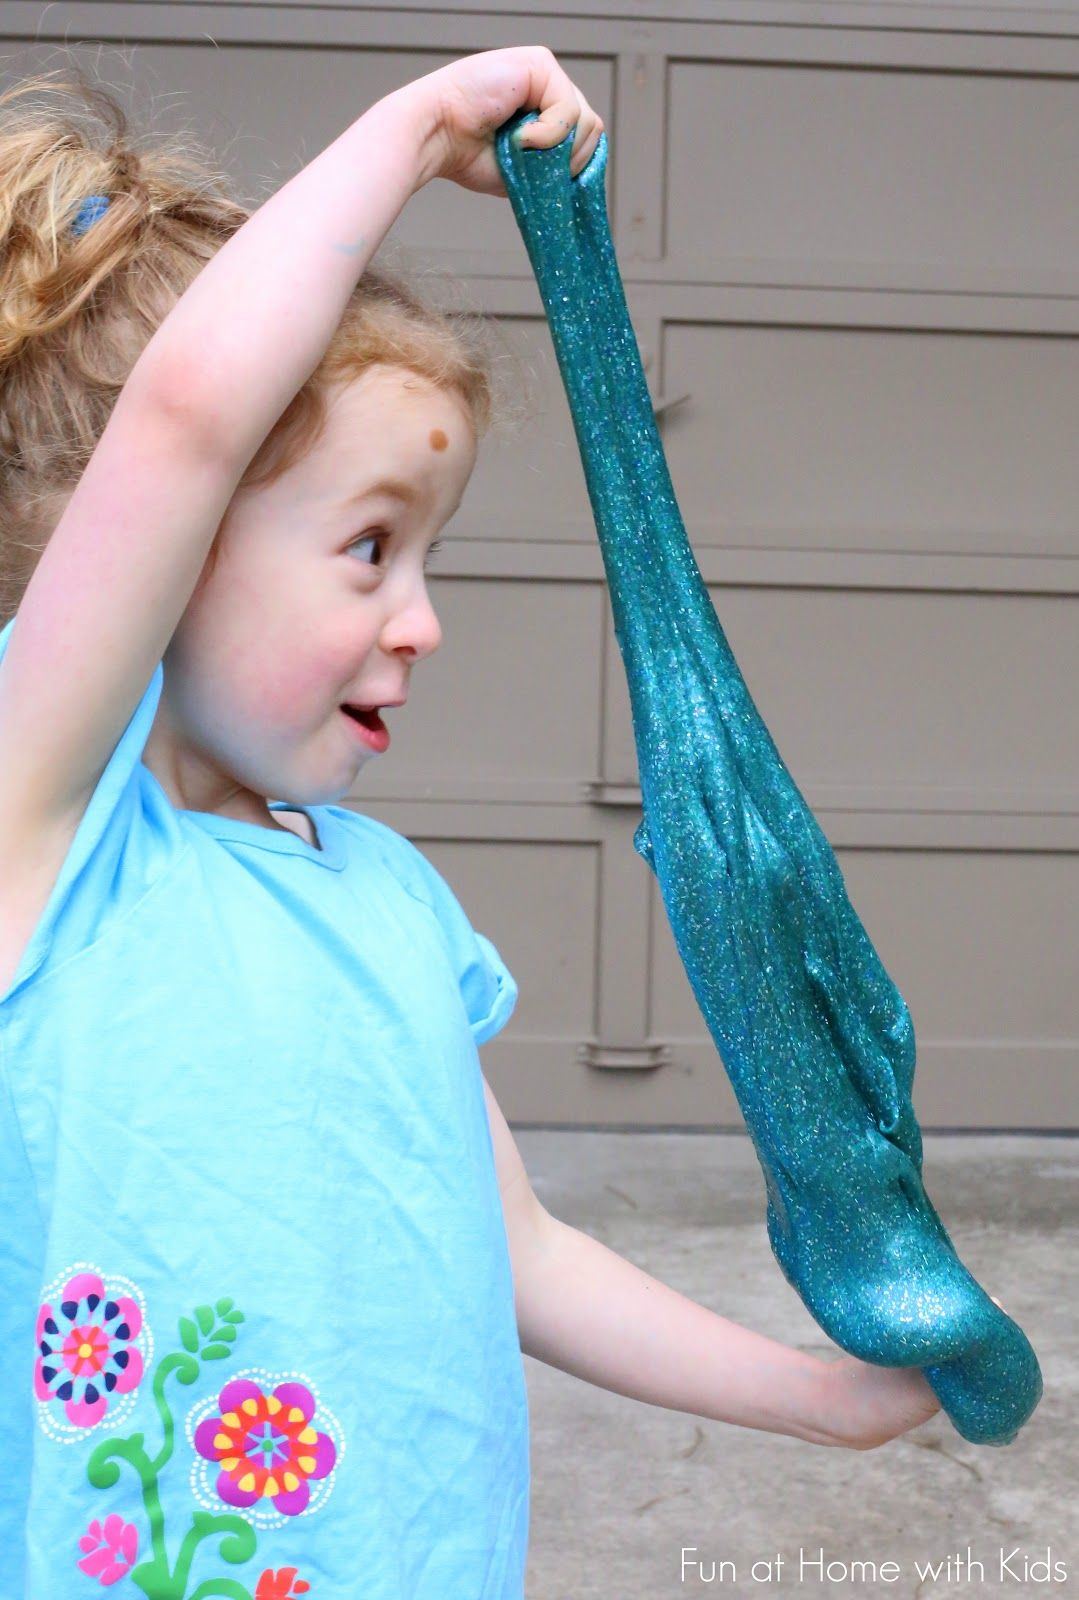 How To Make Slime Using Laundry Detergent! A New Recipe For Slime Making  From Fun